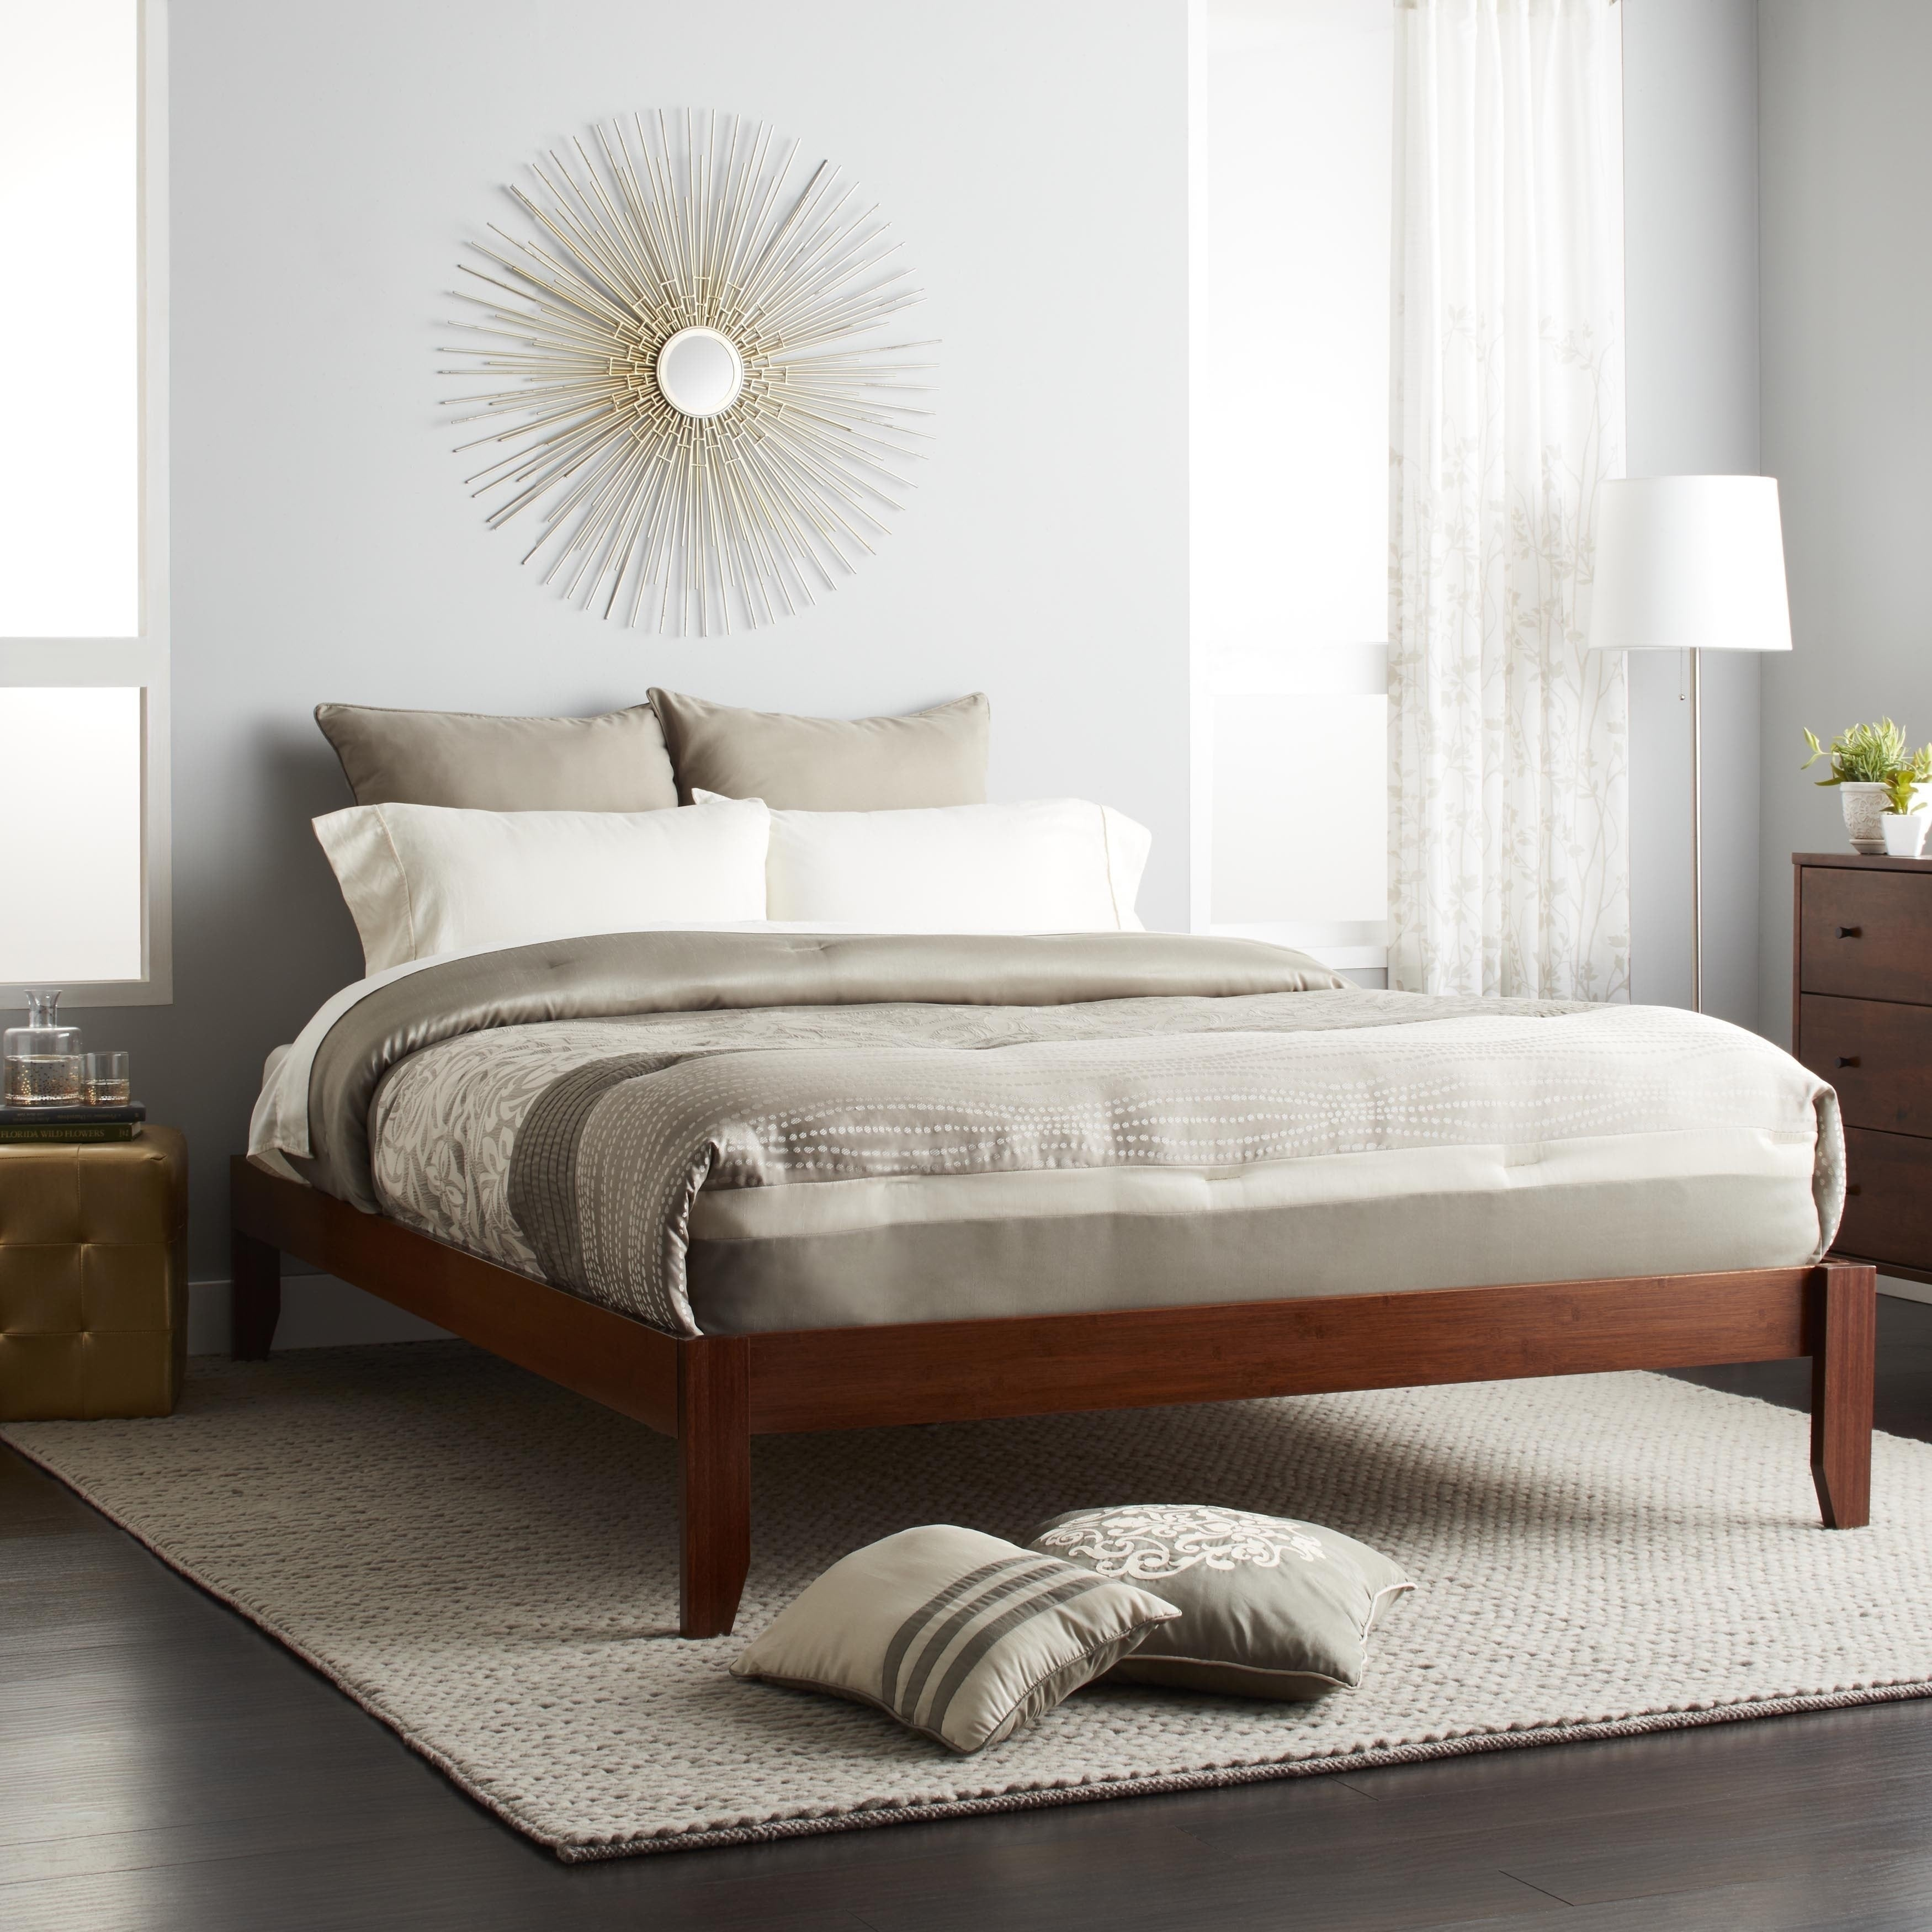 Bed Frames Online At Our Best Bedroom Furniture Deals